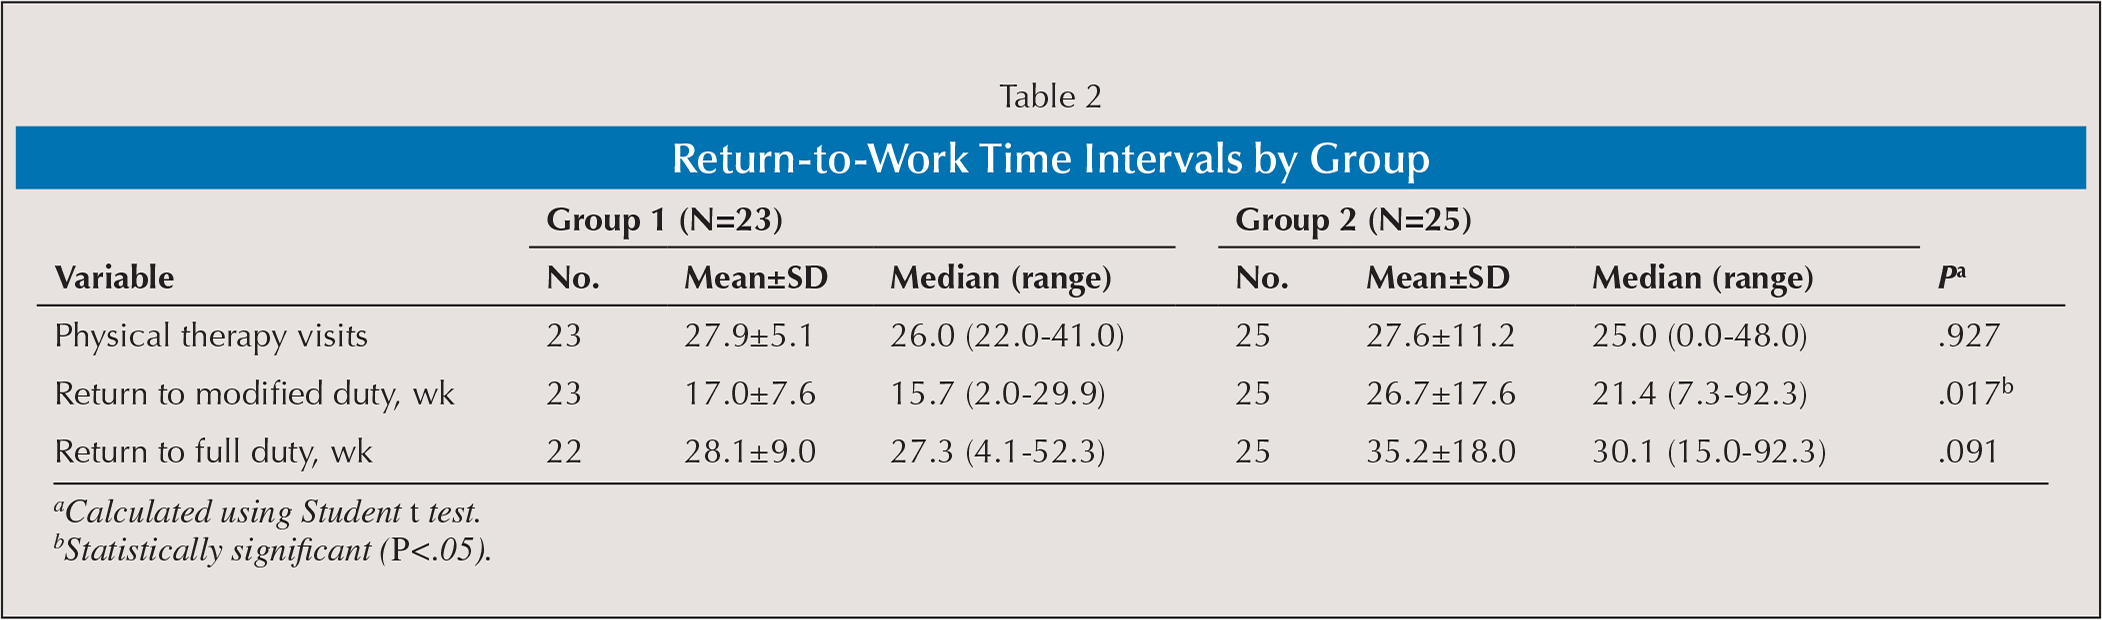 Return-to-Work Time Intervals by Group